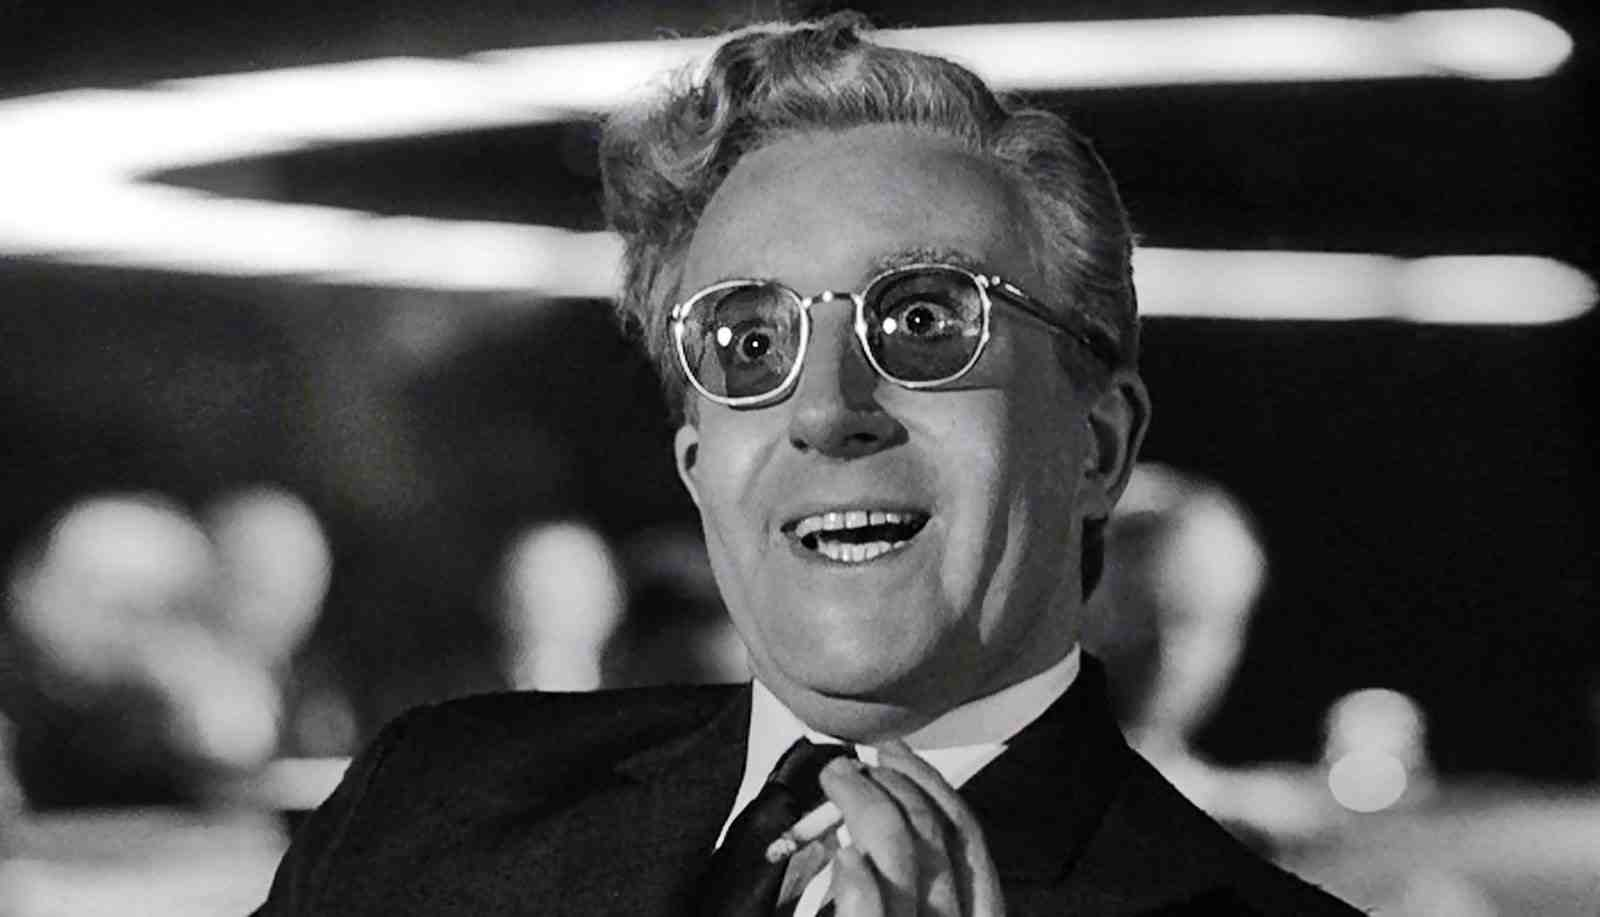 The Strangelove